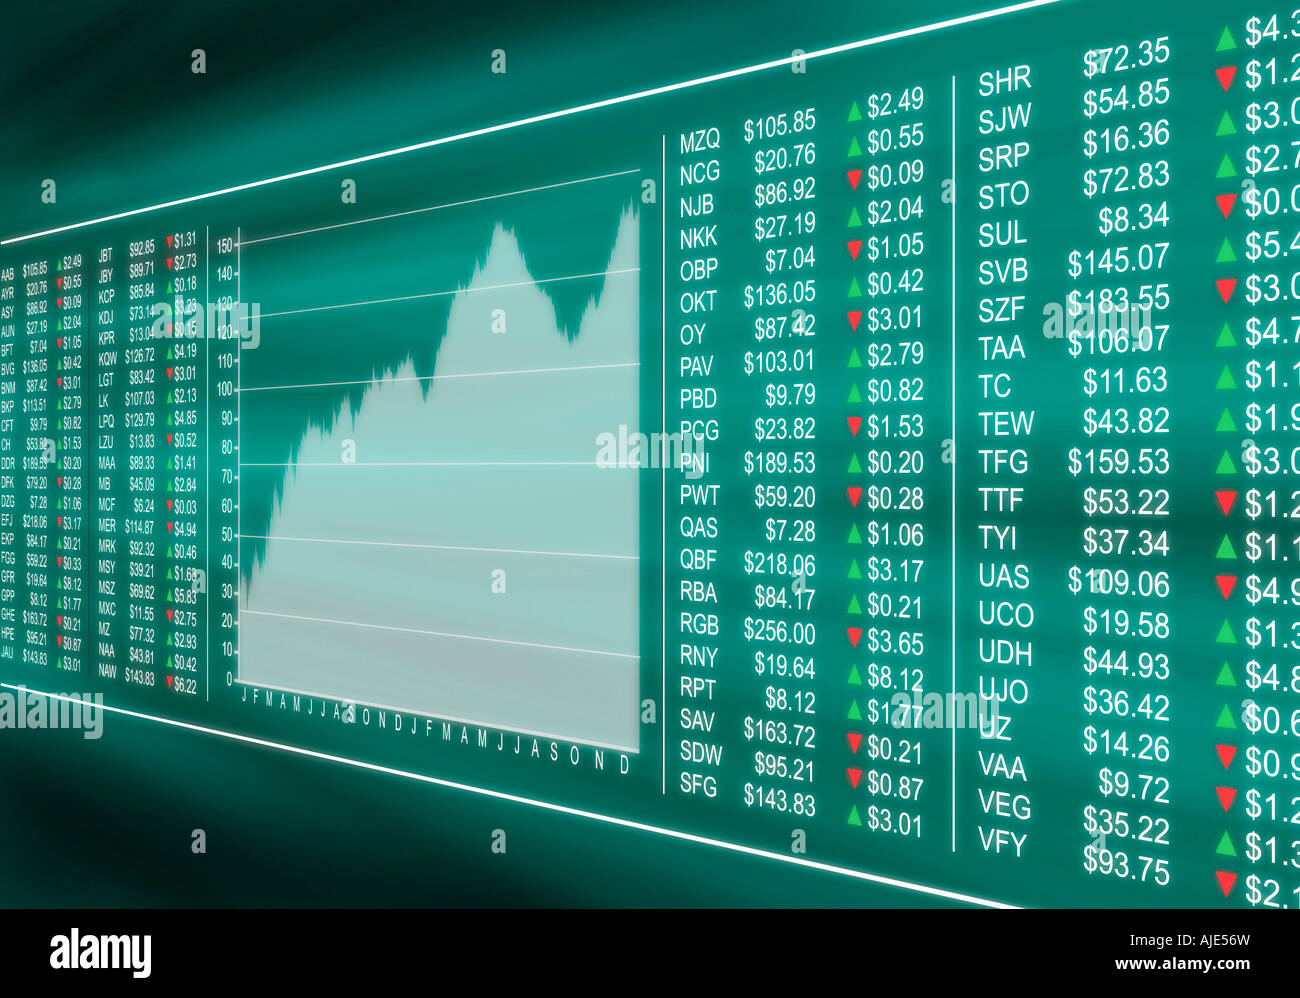 Virtual display monitoring financial stock market prices - Stock Image